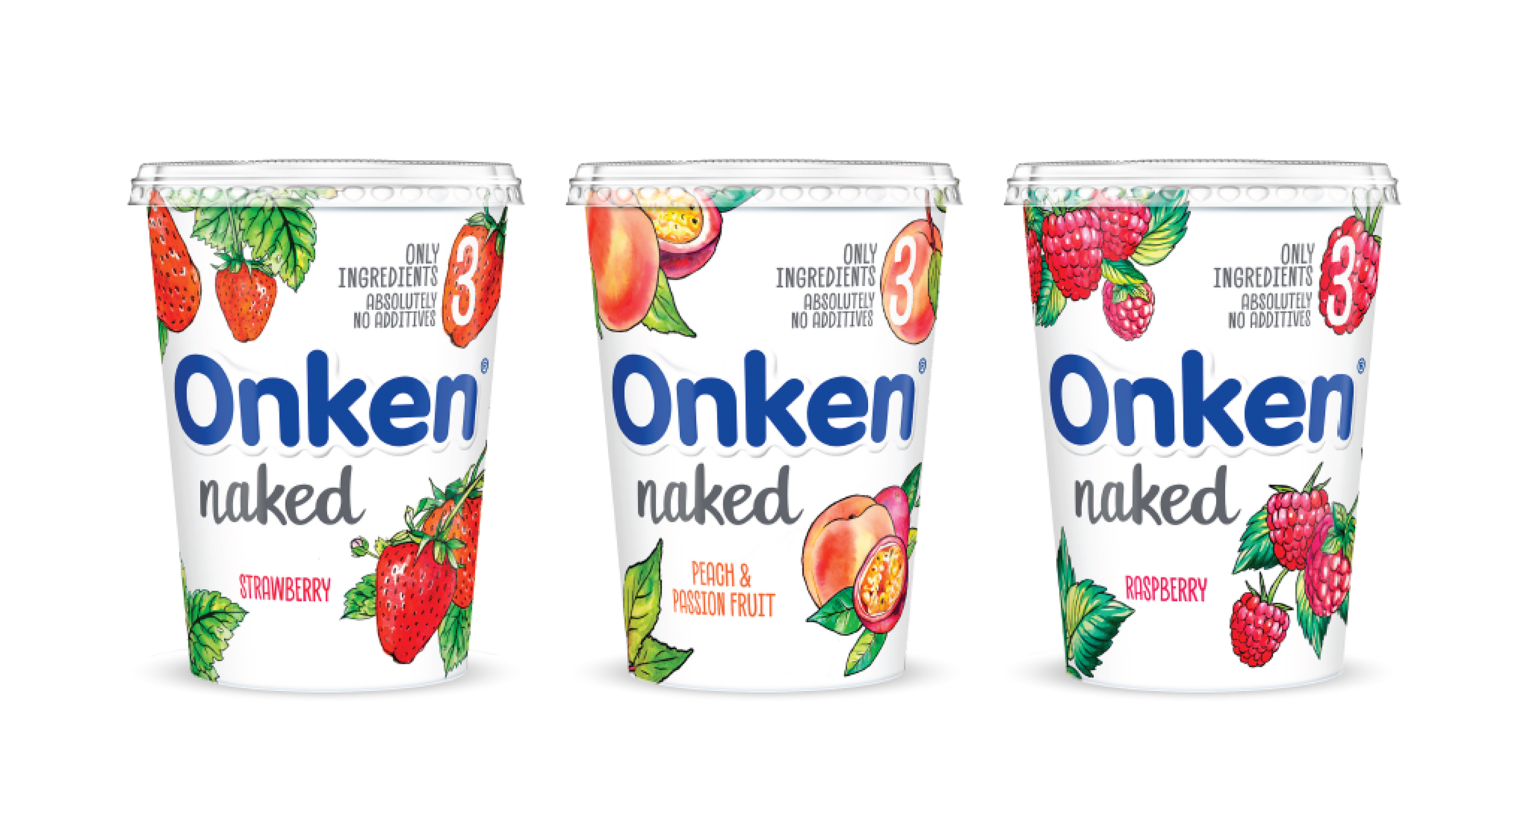 Onken Naked – ATL Launch Campaign